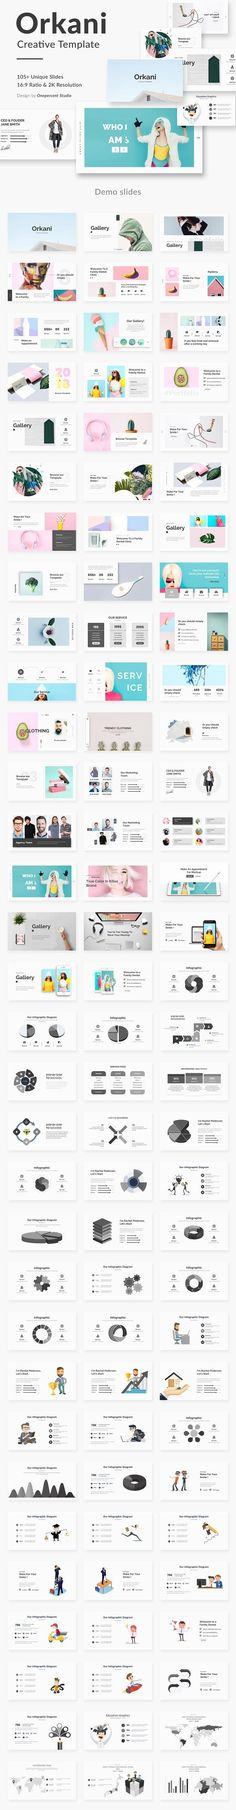 Orkani Minimal Powerpoint Template by One Percent Studio on @creativemarket